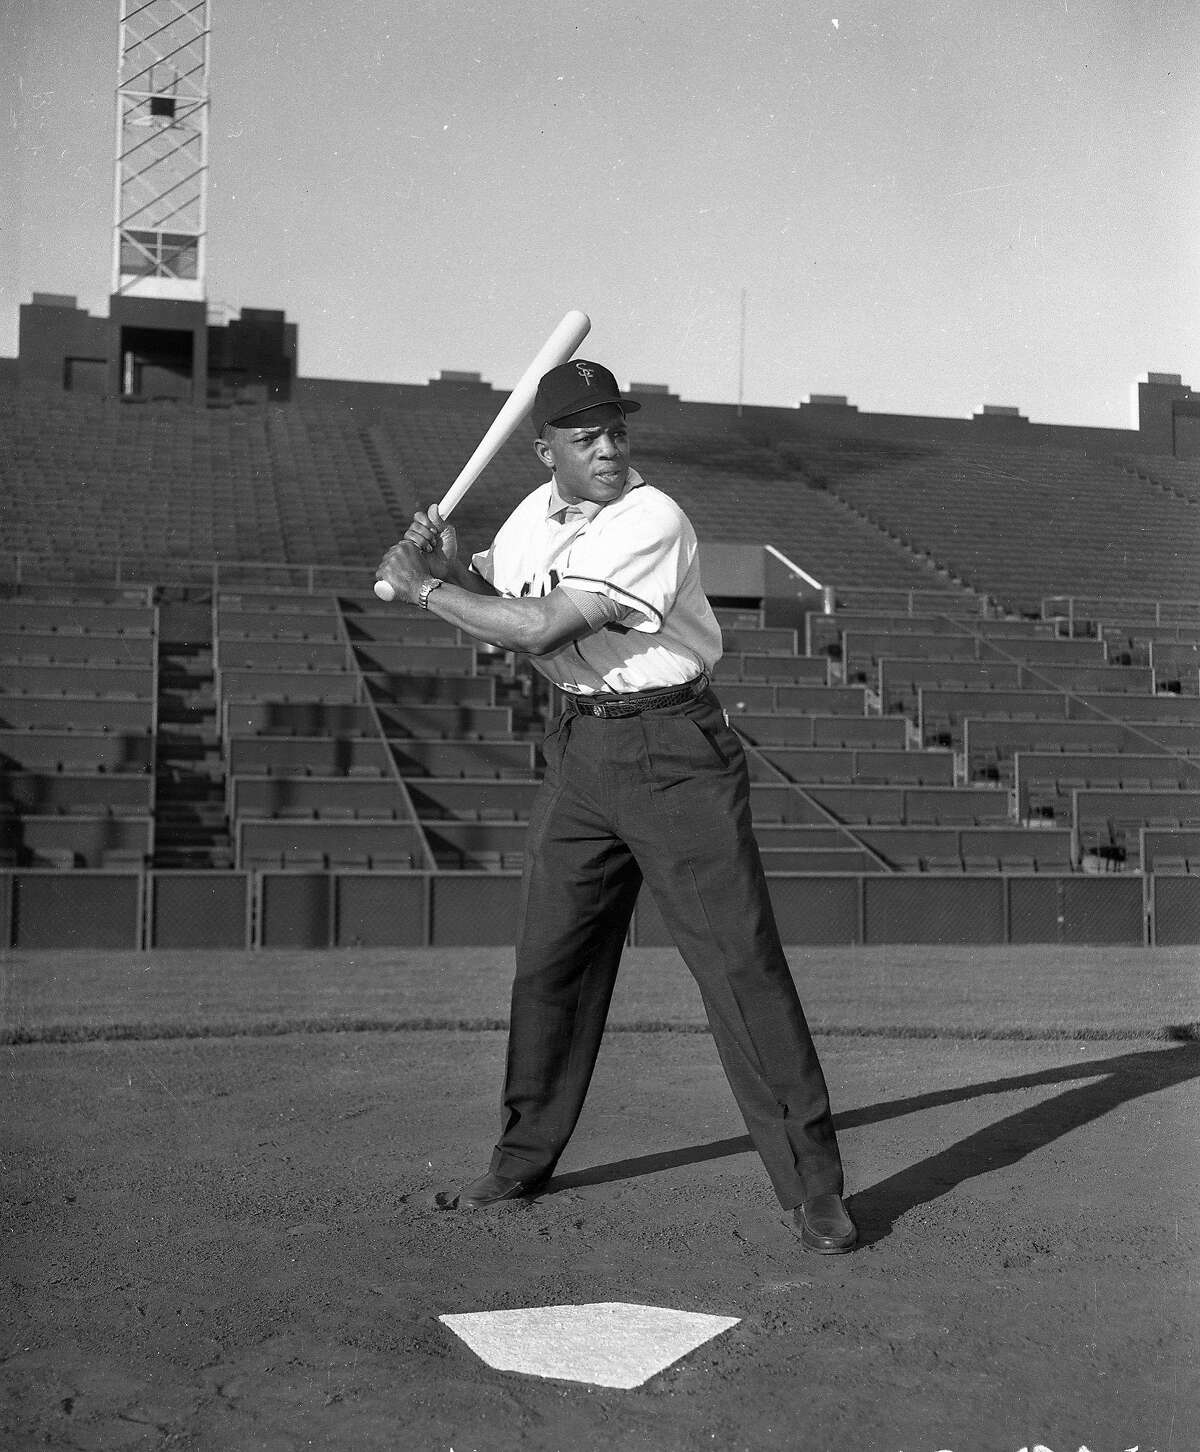 Willie Mays posing at the plate in Seals Stadium during an October 31, 1957 photo shoot, the year before the outfielder made his debut as a San Francisco Giant.